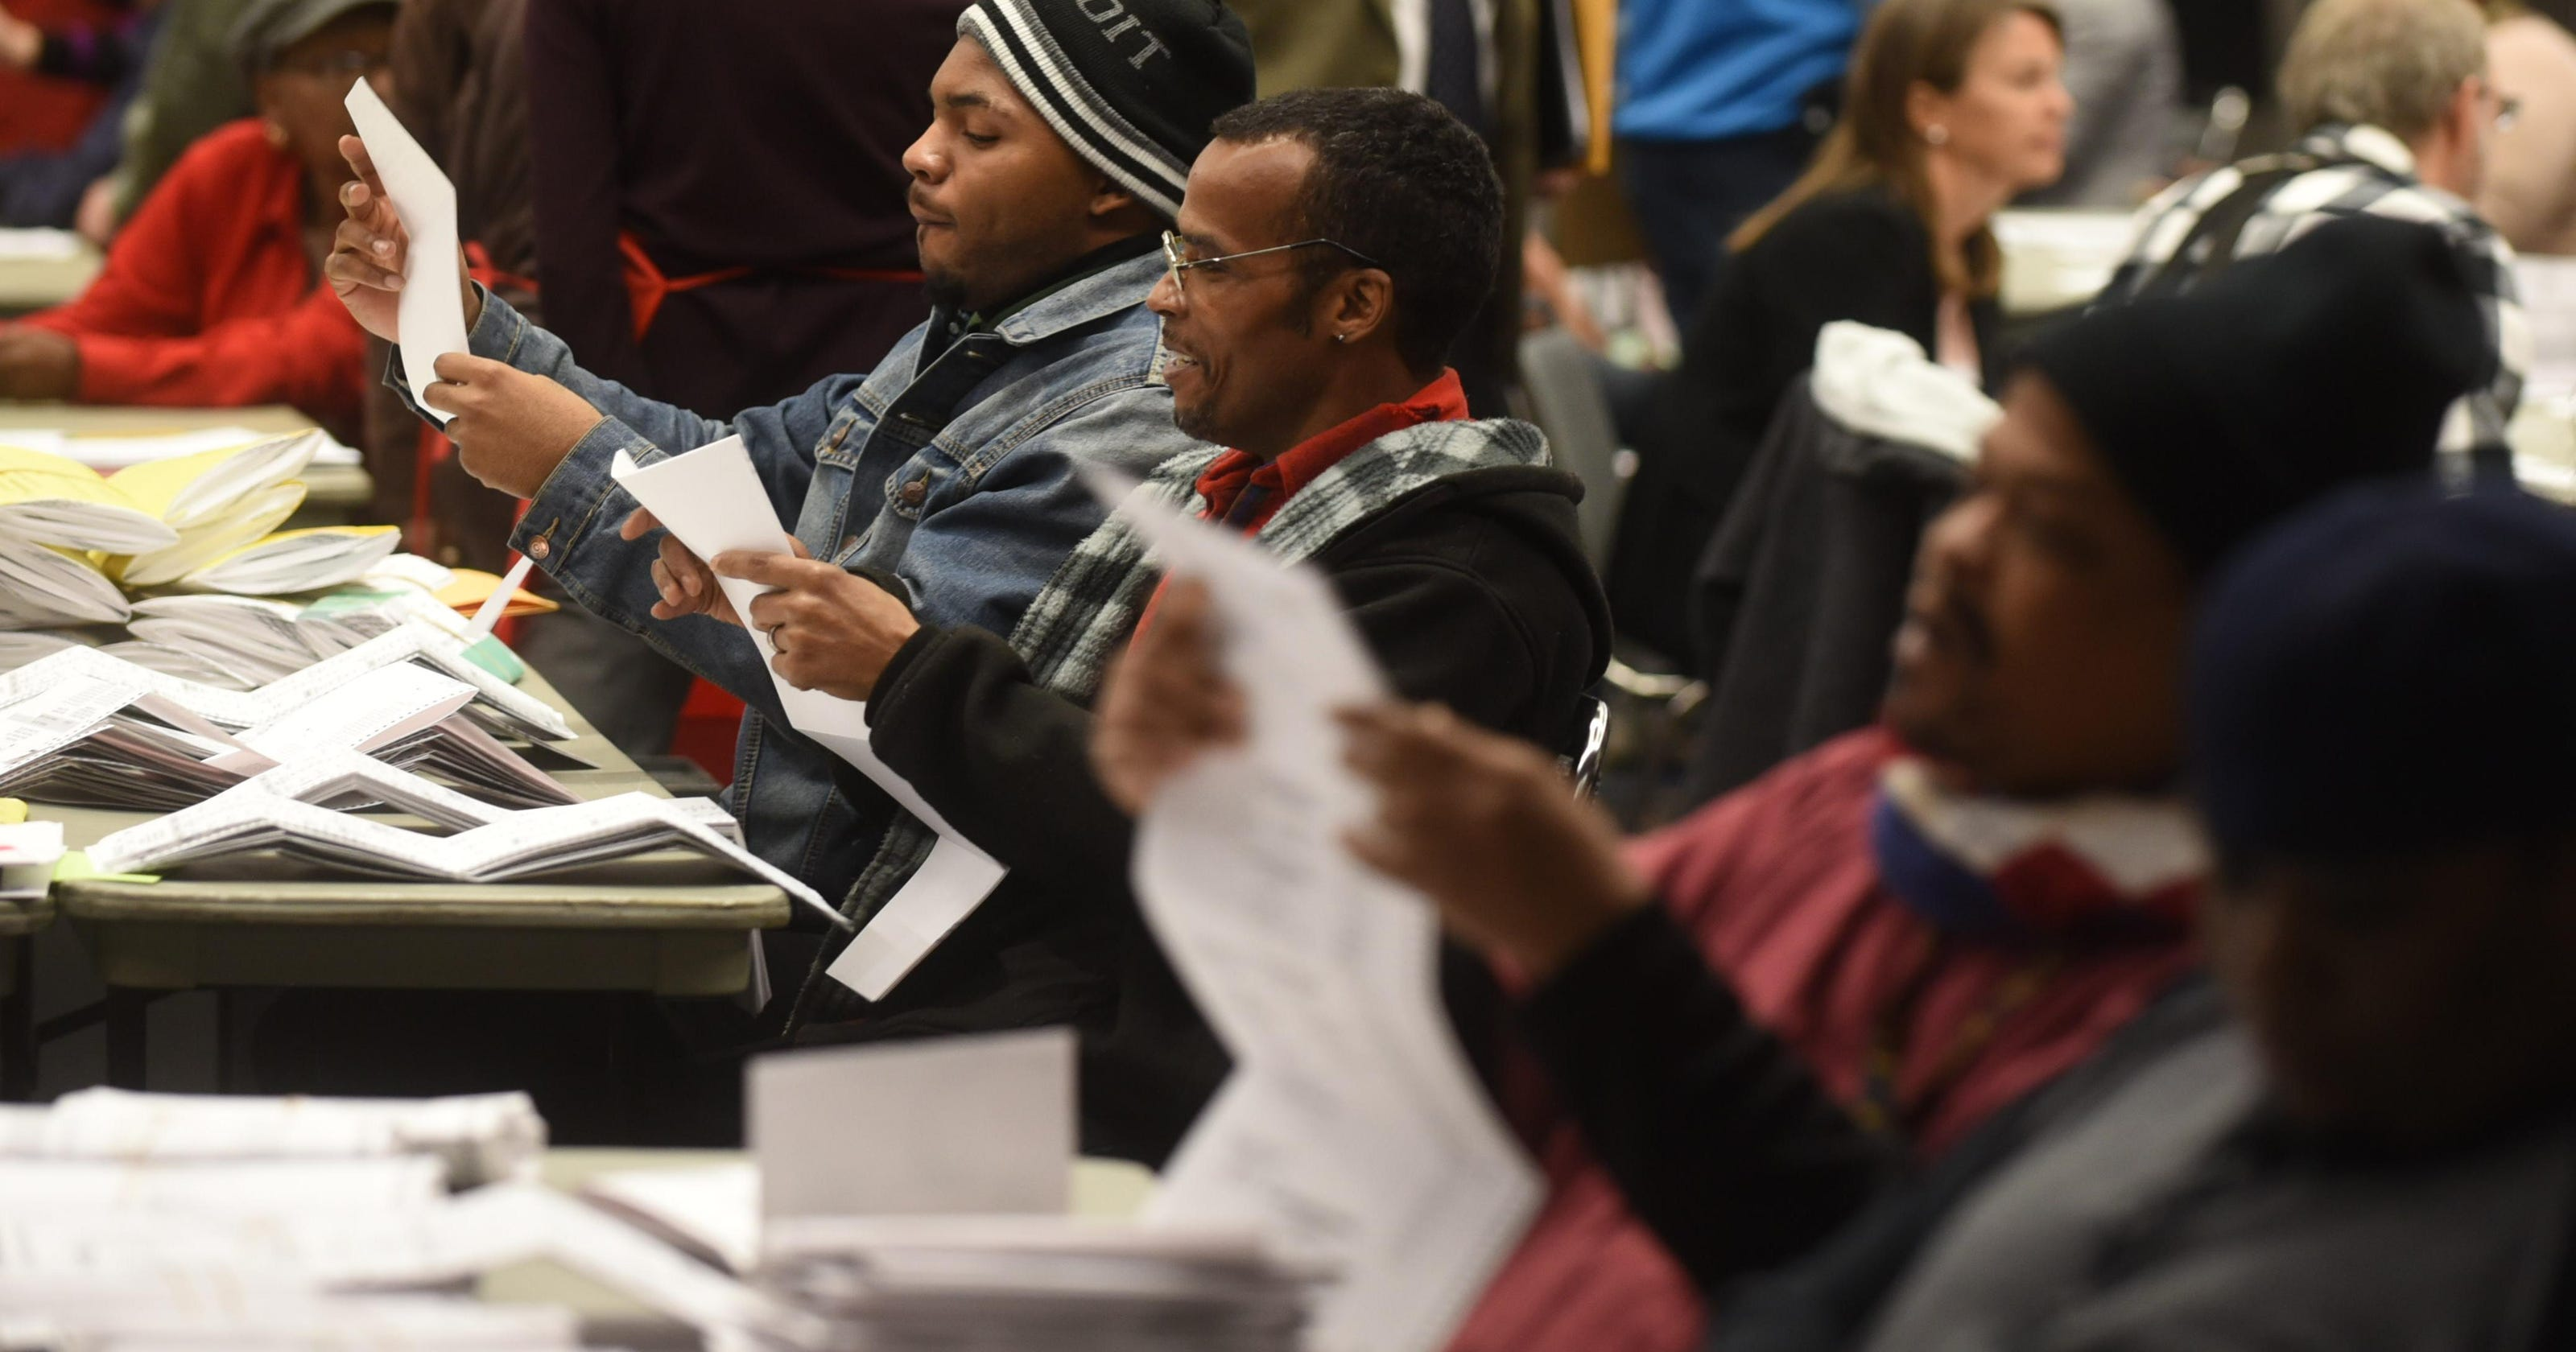 Records: 37 percent of Detroit's precincts registered more votes than they should have